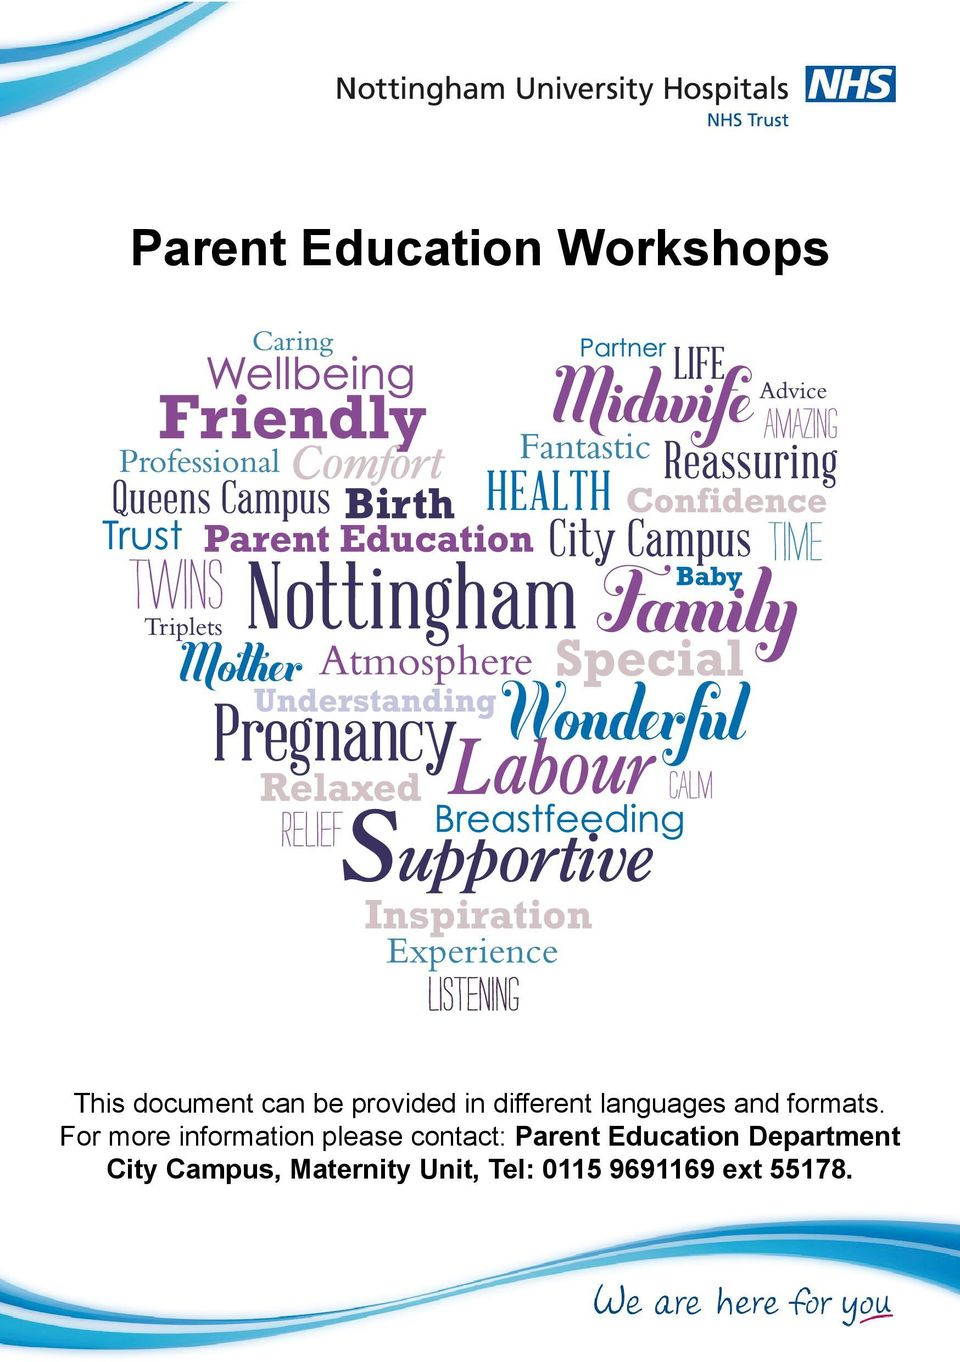 For more information please contact: Parent Education